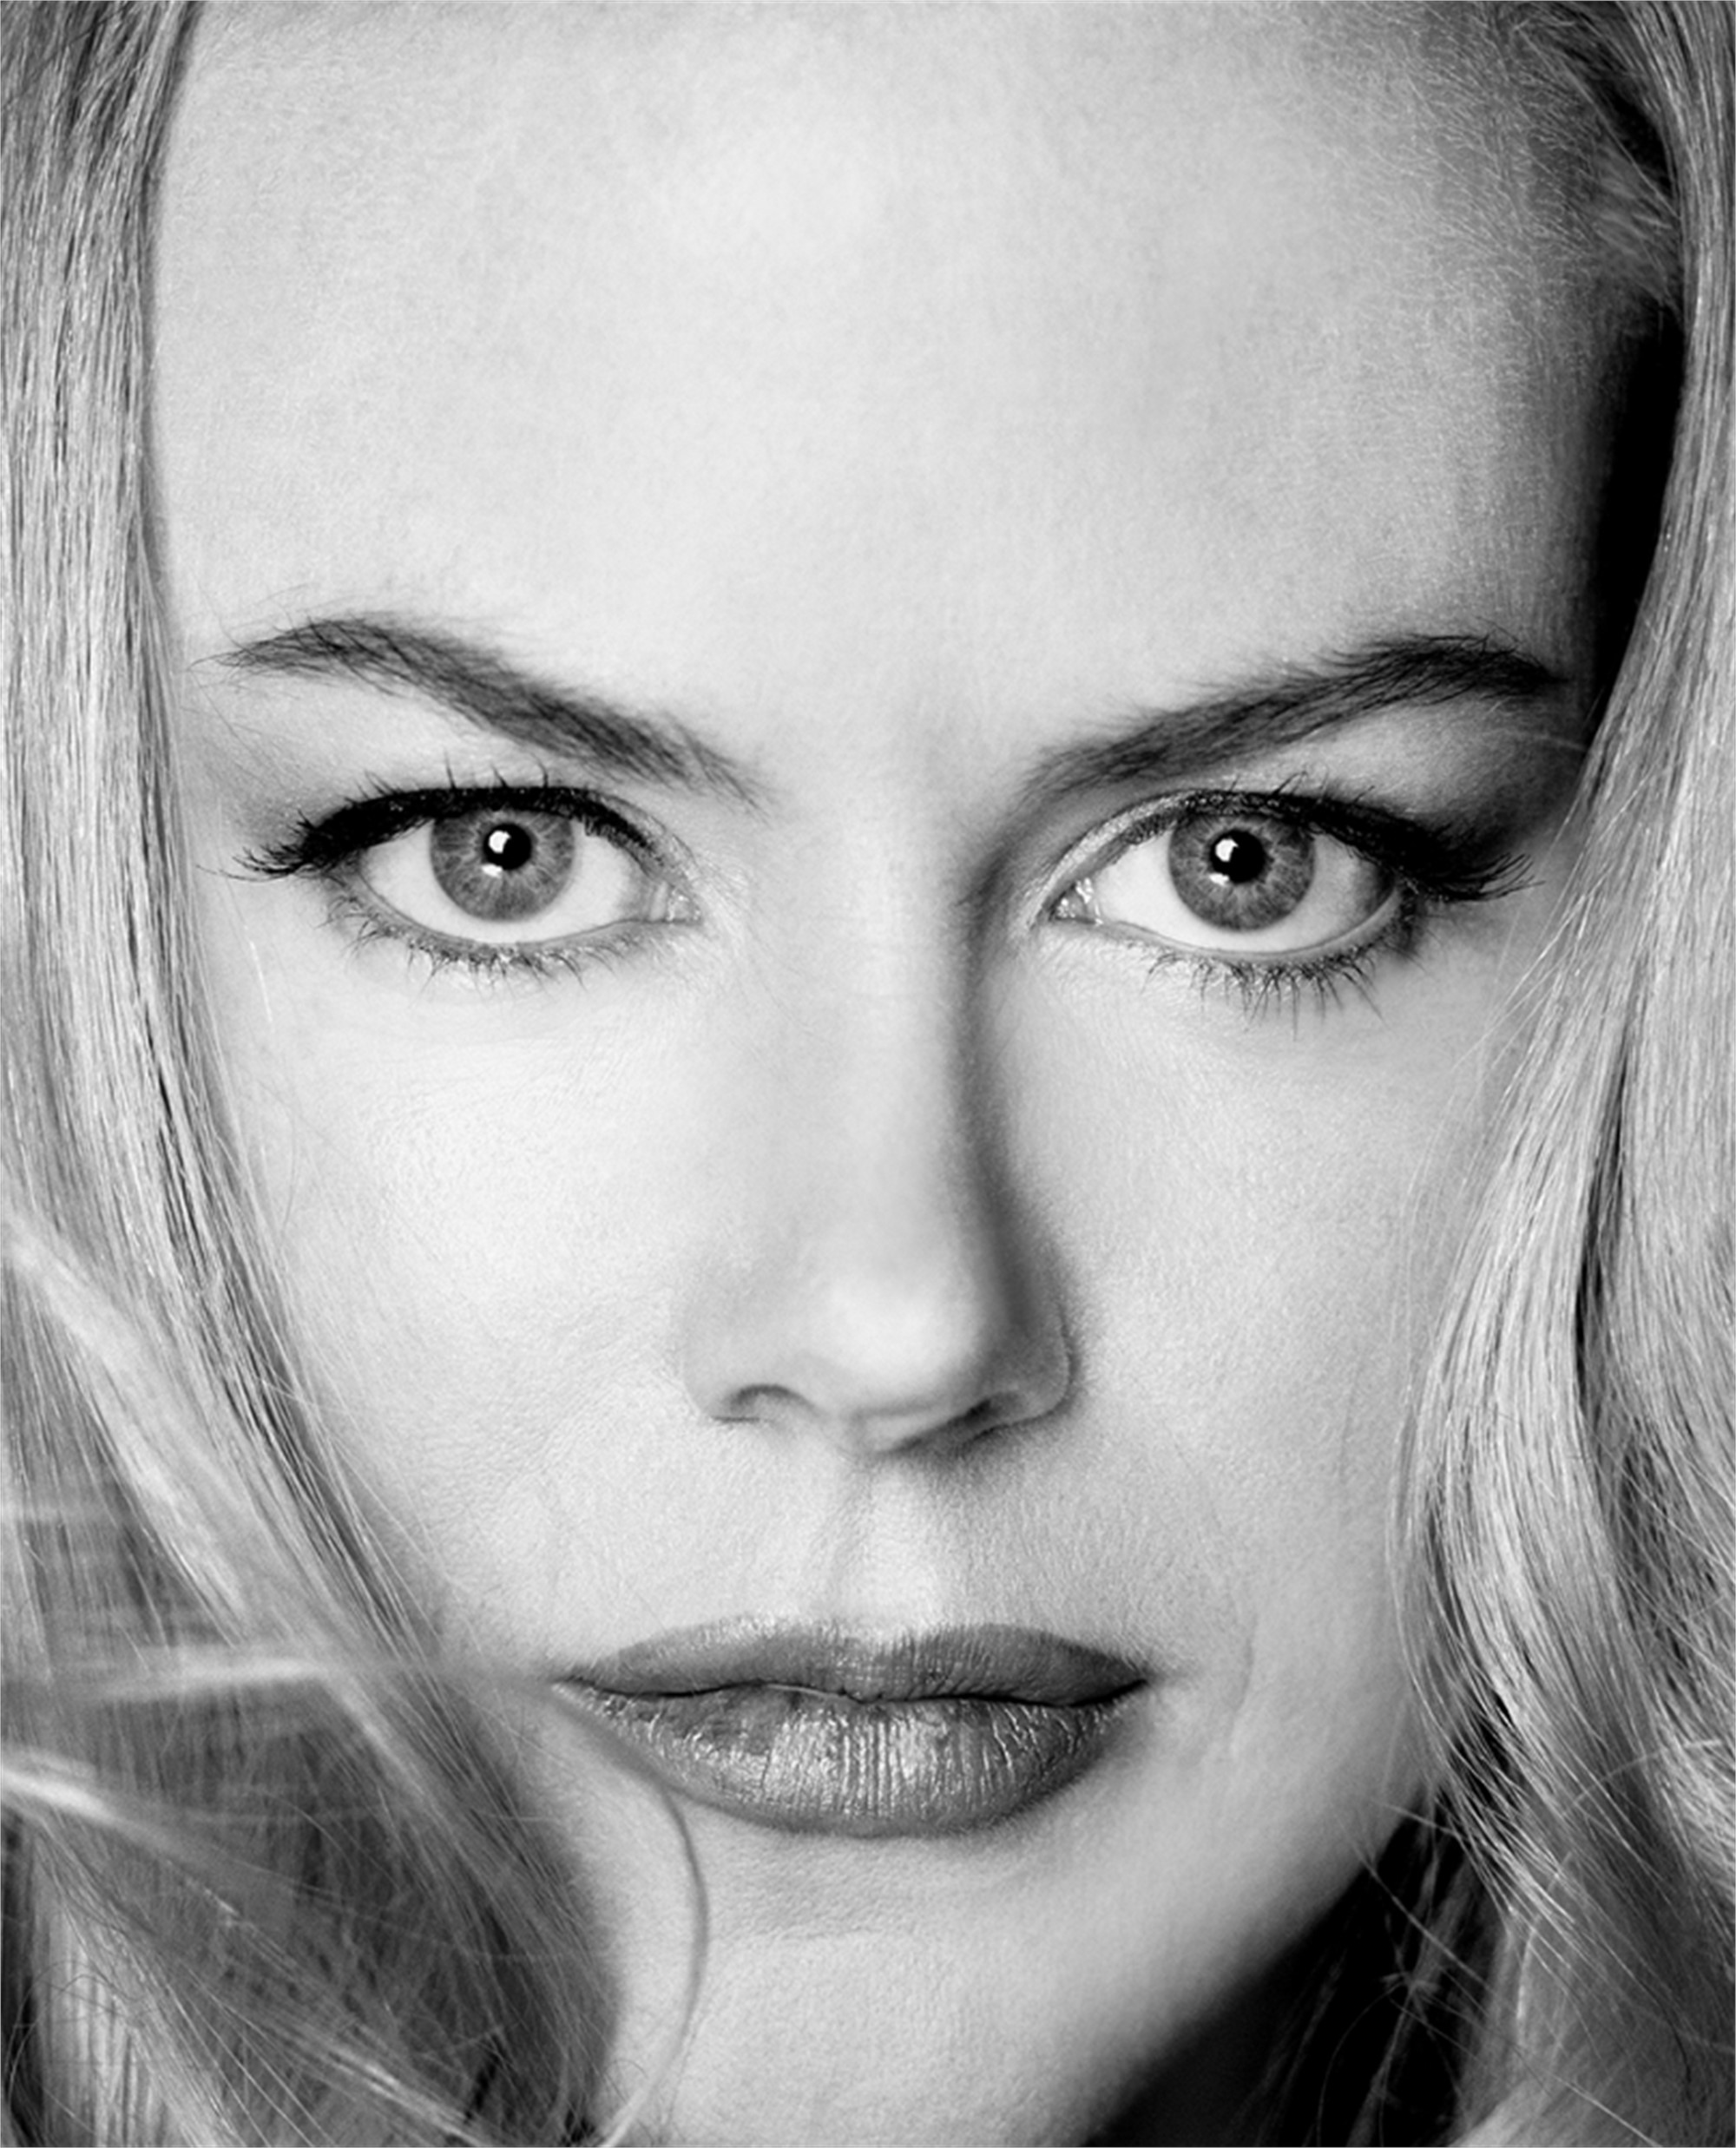 03077 Nicole Kidman Headshot BW by Timothy White